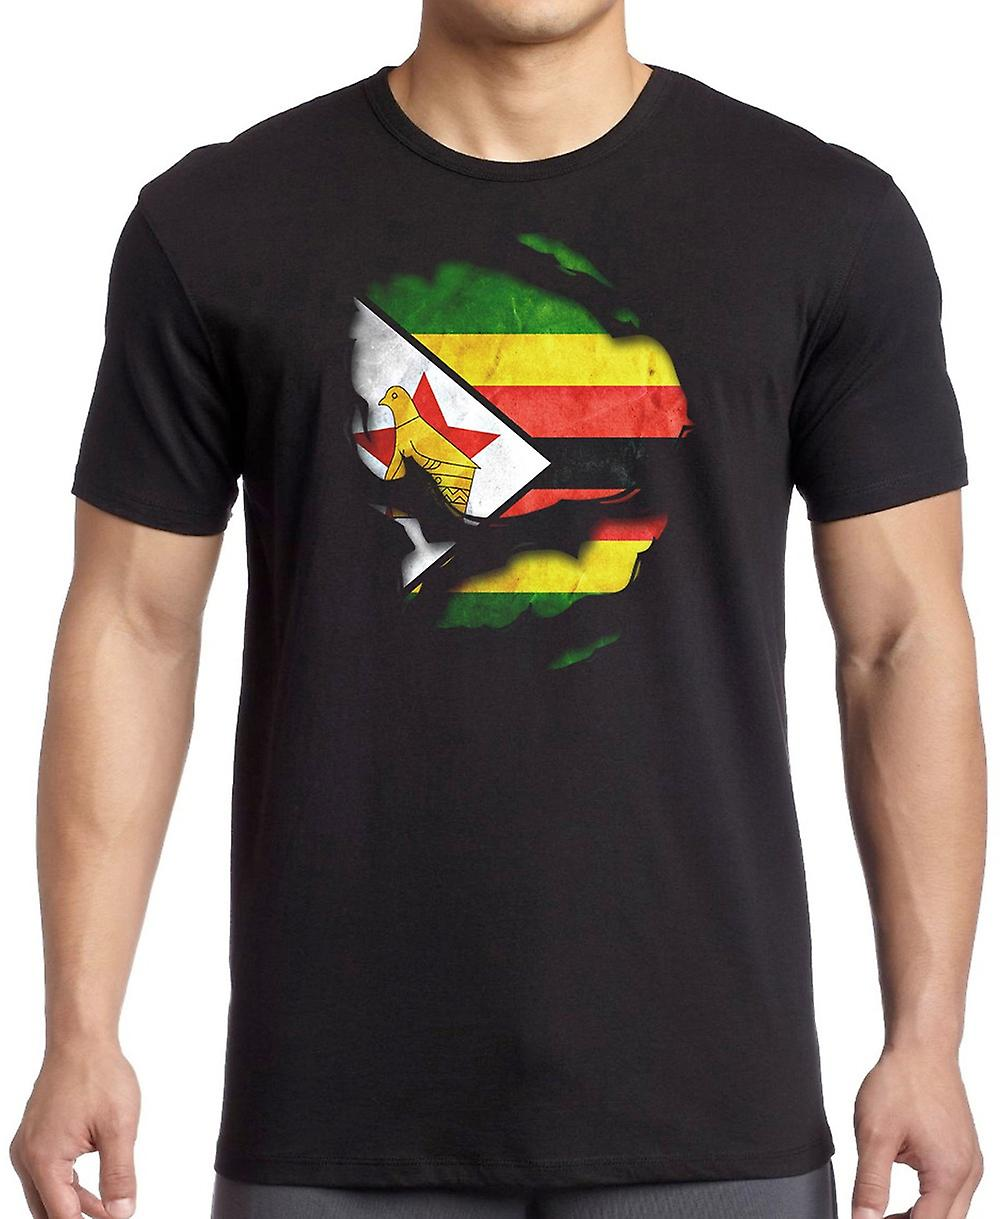 Zimbabwe Ripped Effect Under Shirt T Shirt